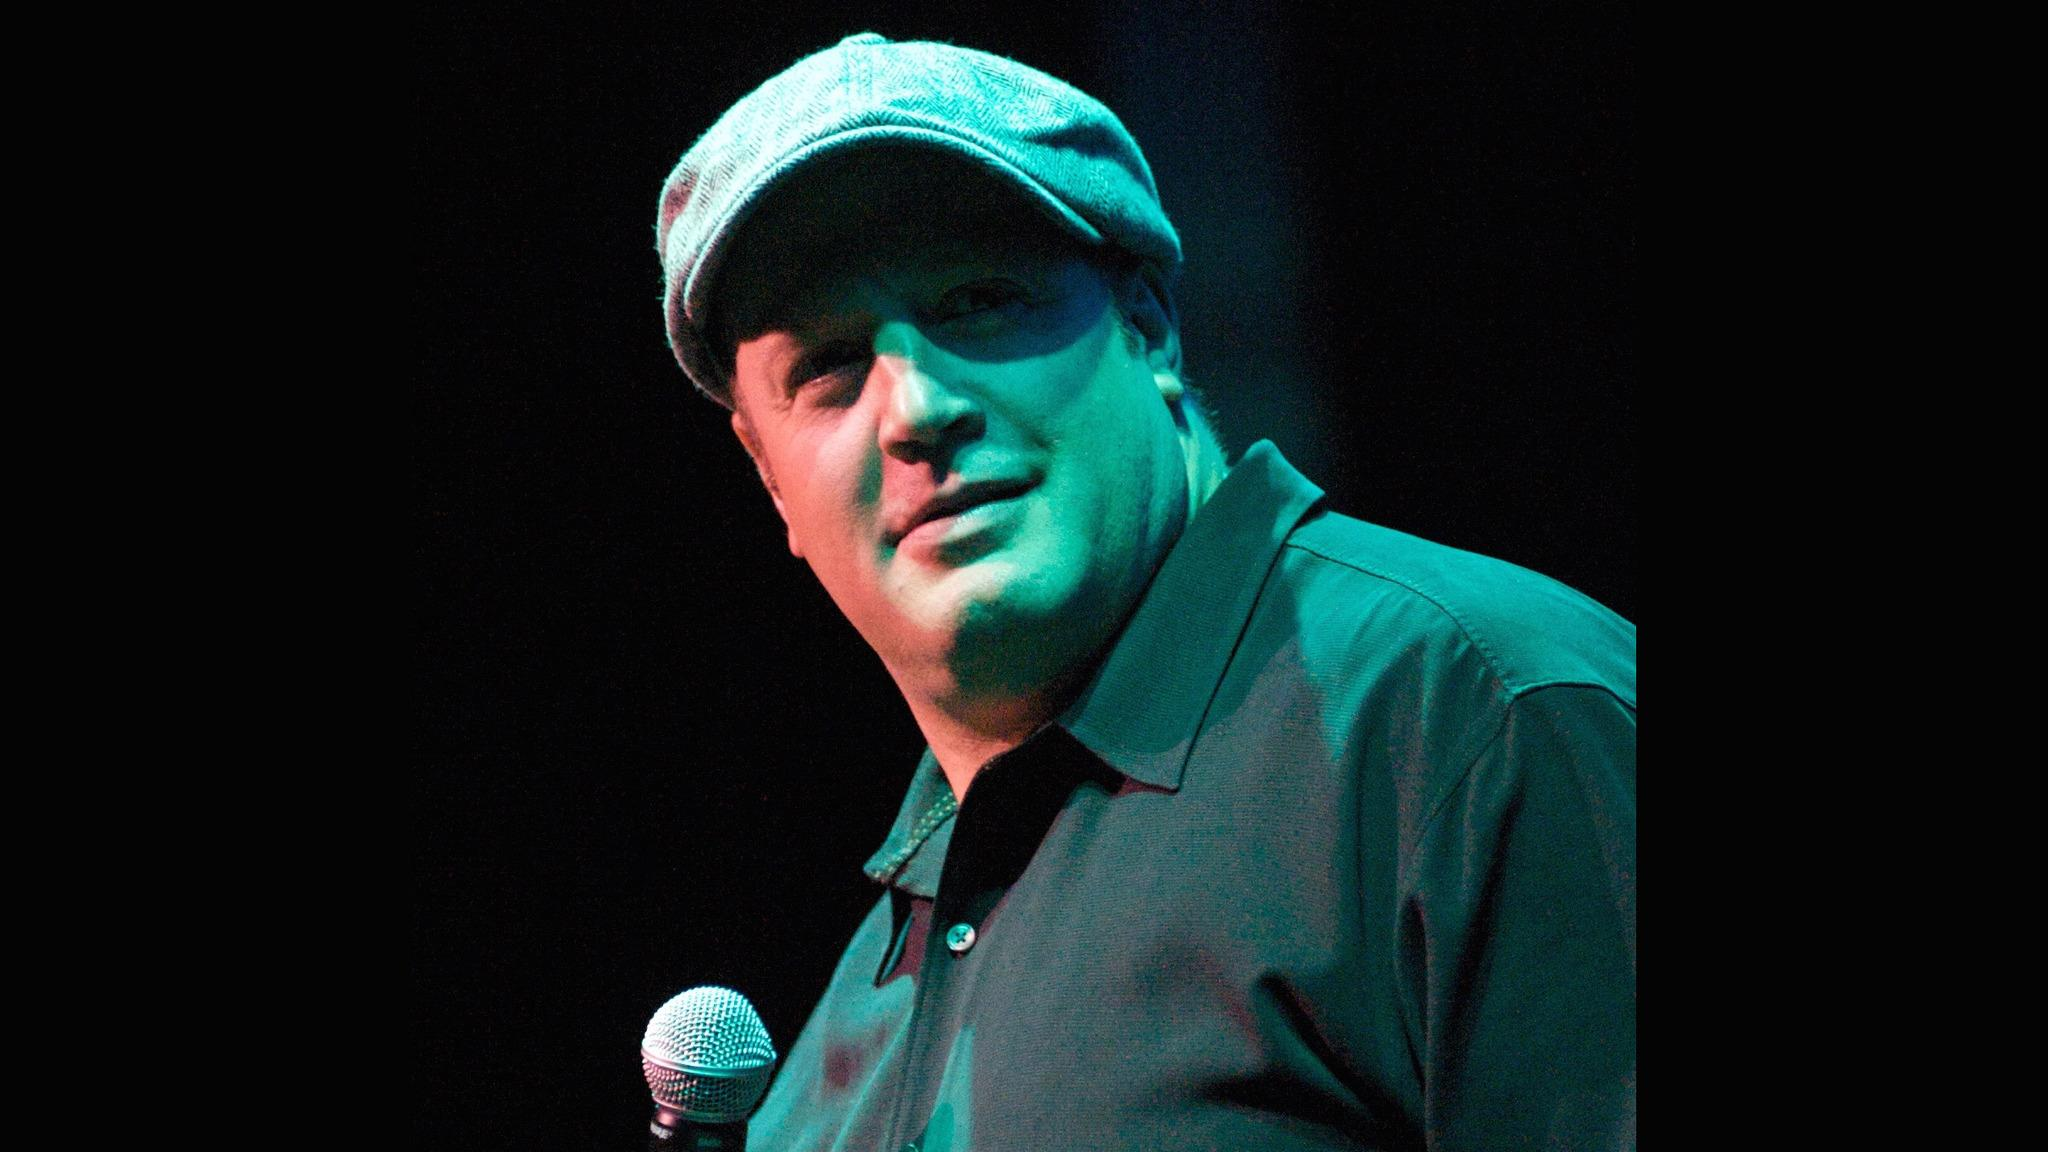 Kevin James at Merrill Auditorium